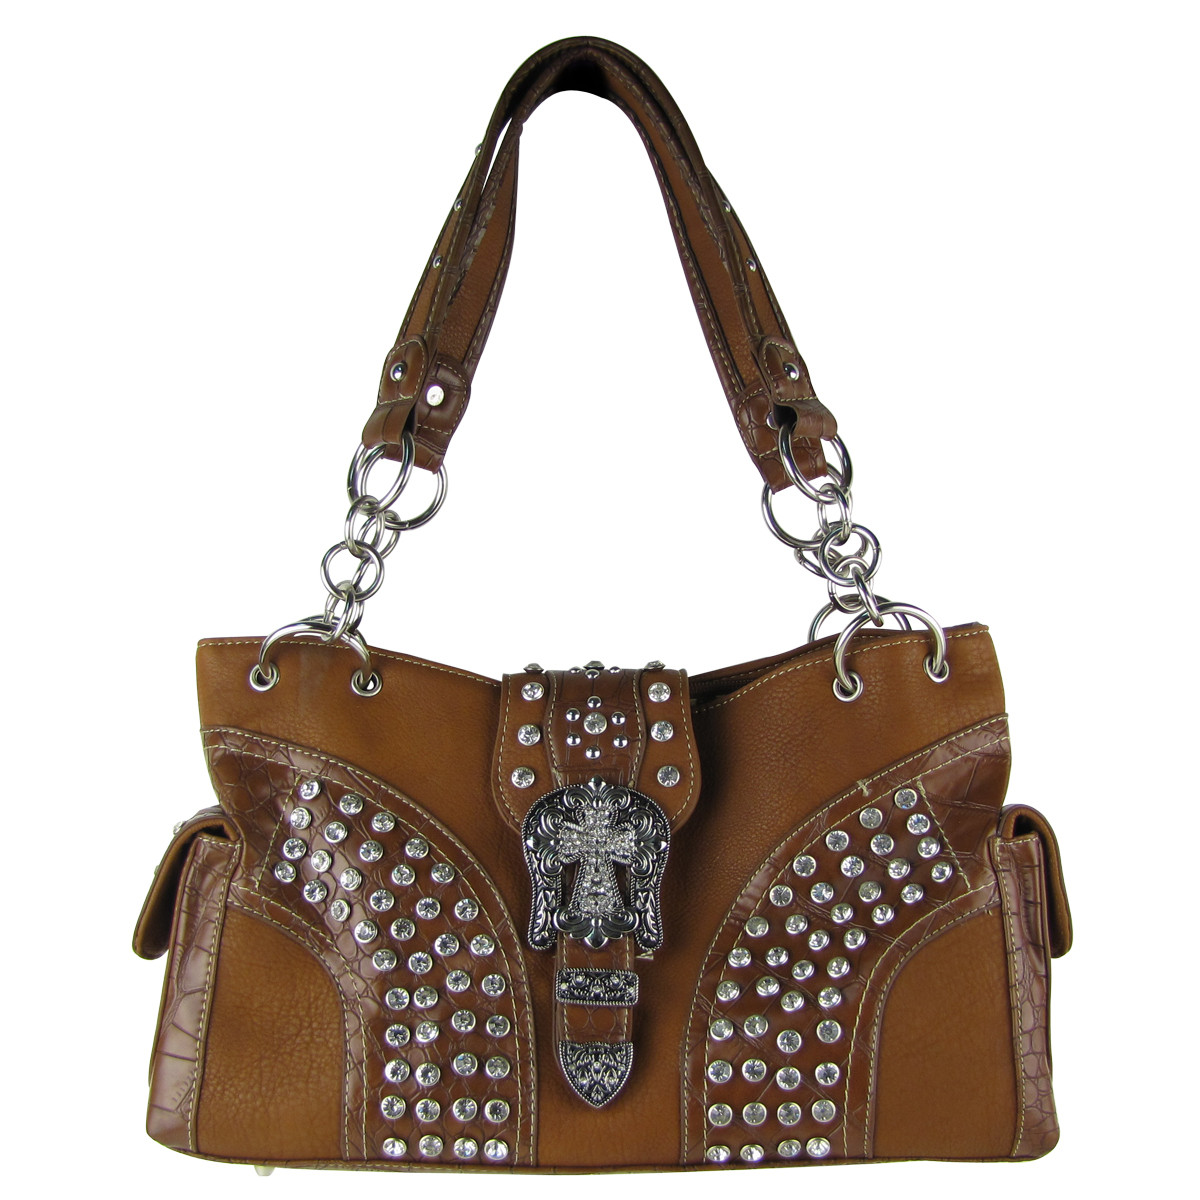 BROWN STUDDED RHINESTONE CROSS BUCKLE SHOULDER HANDBAG HB1-HL12150BRN